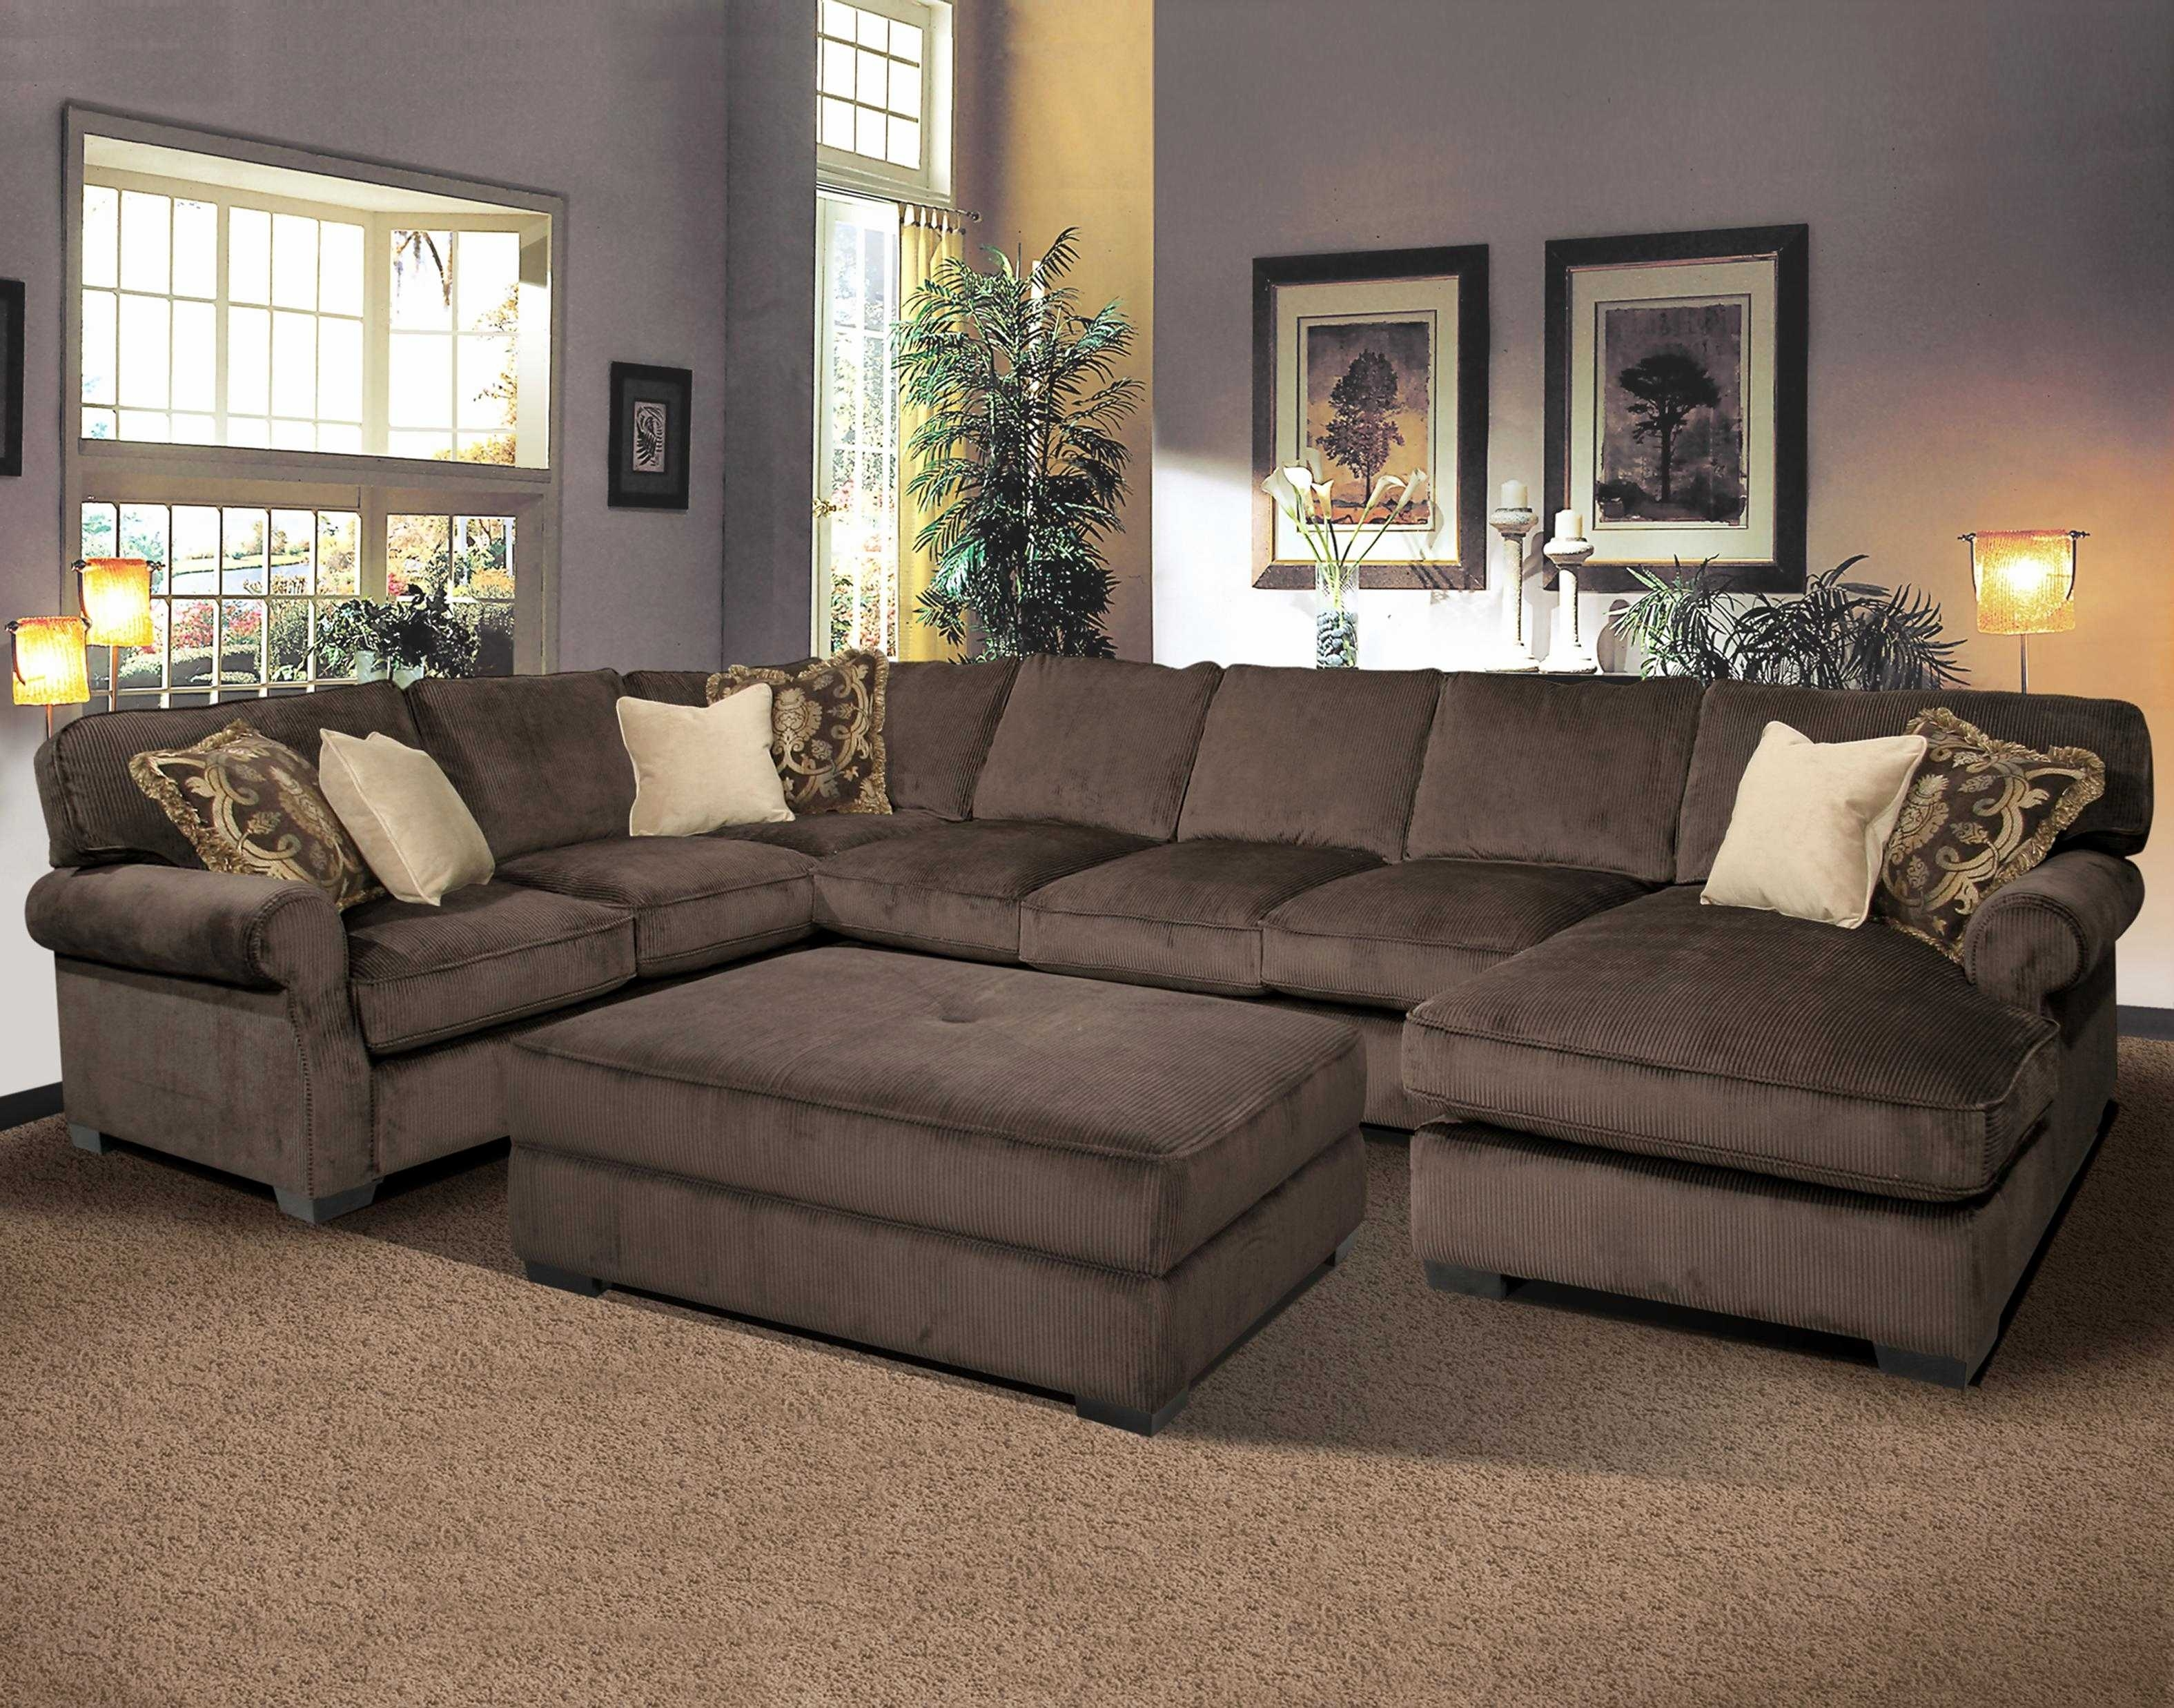 collections ashley item sectional lsg sofa signature contemporary home pillow direct design sofas furnishings by darcy sparks sage homestore sweeping with arms